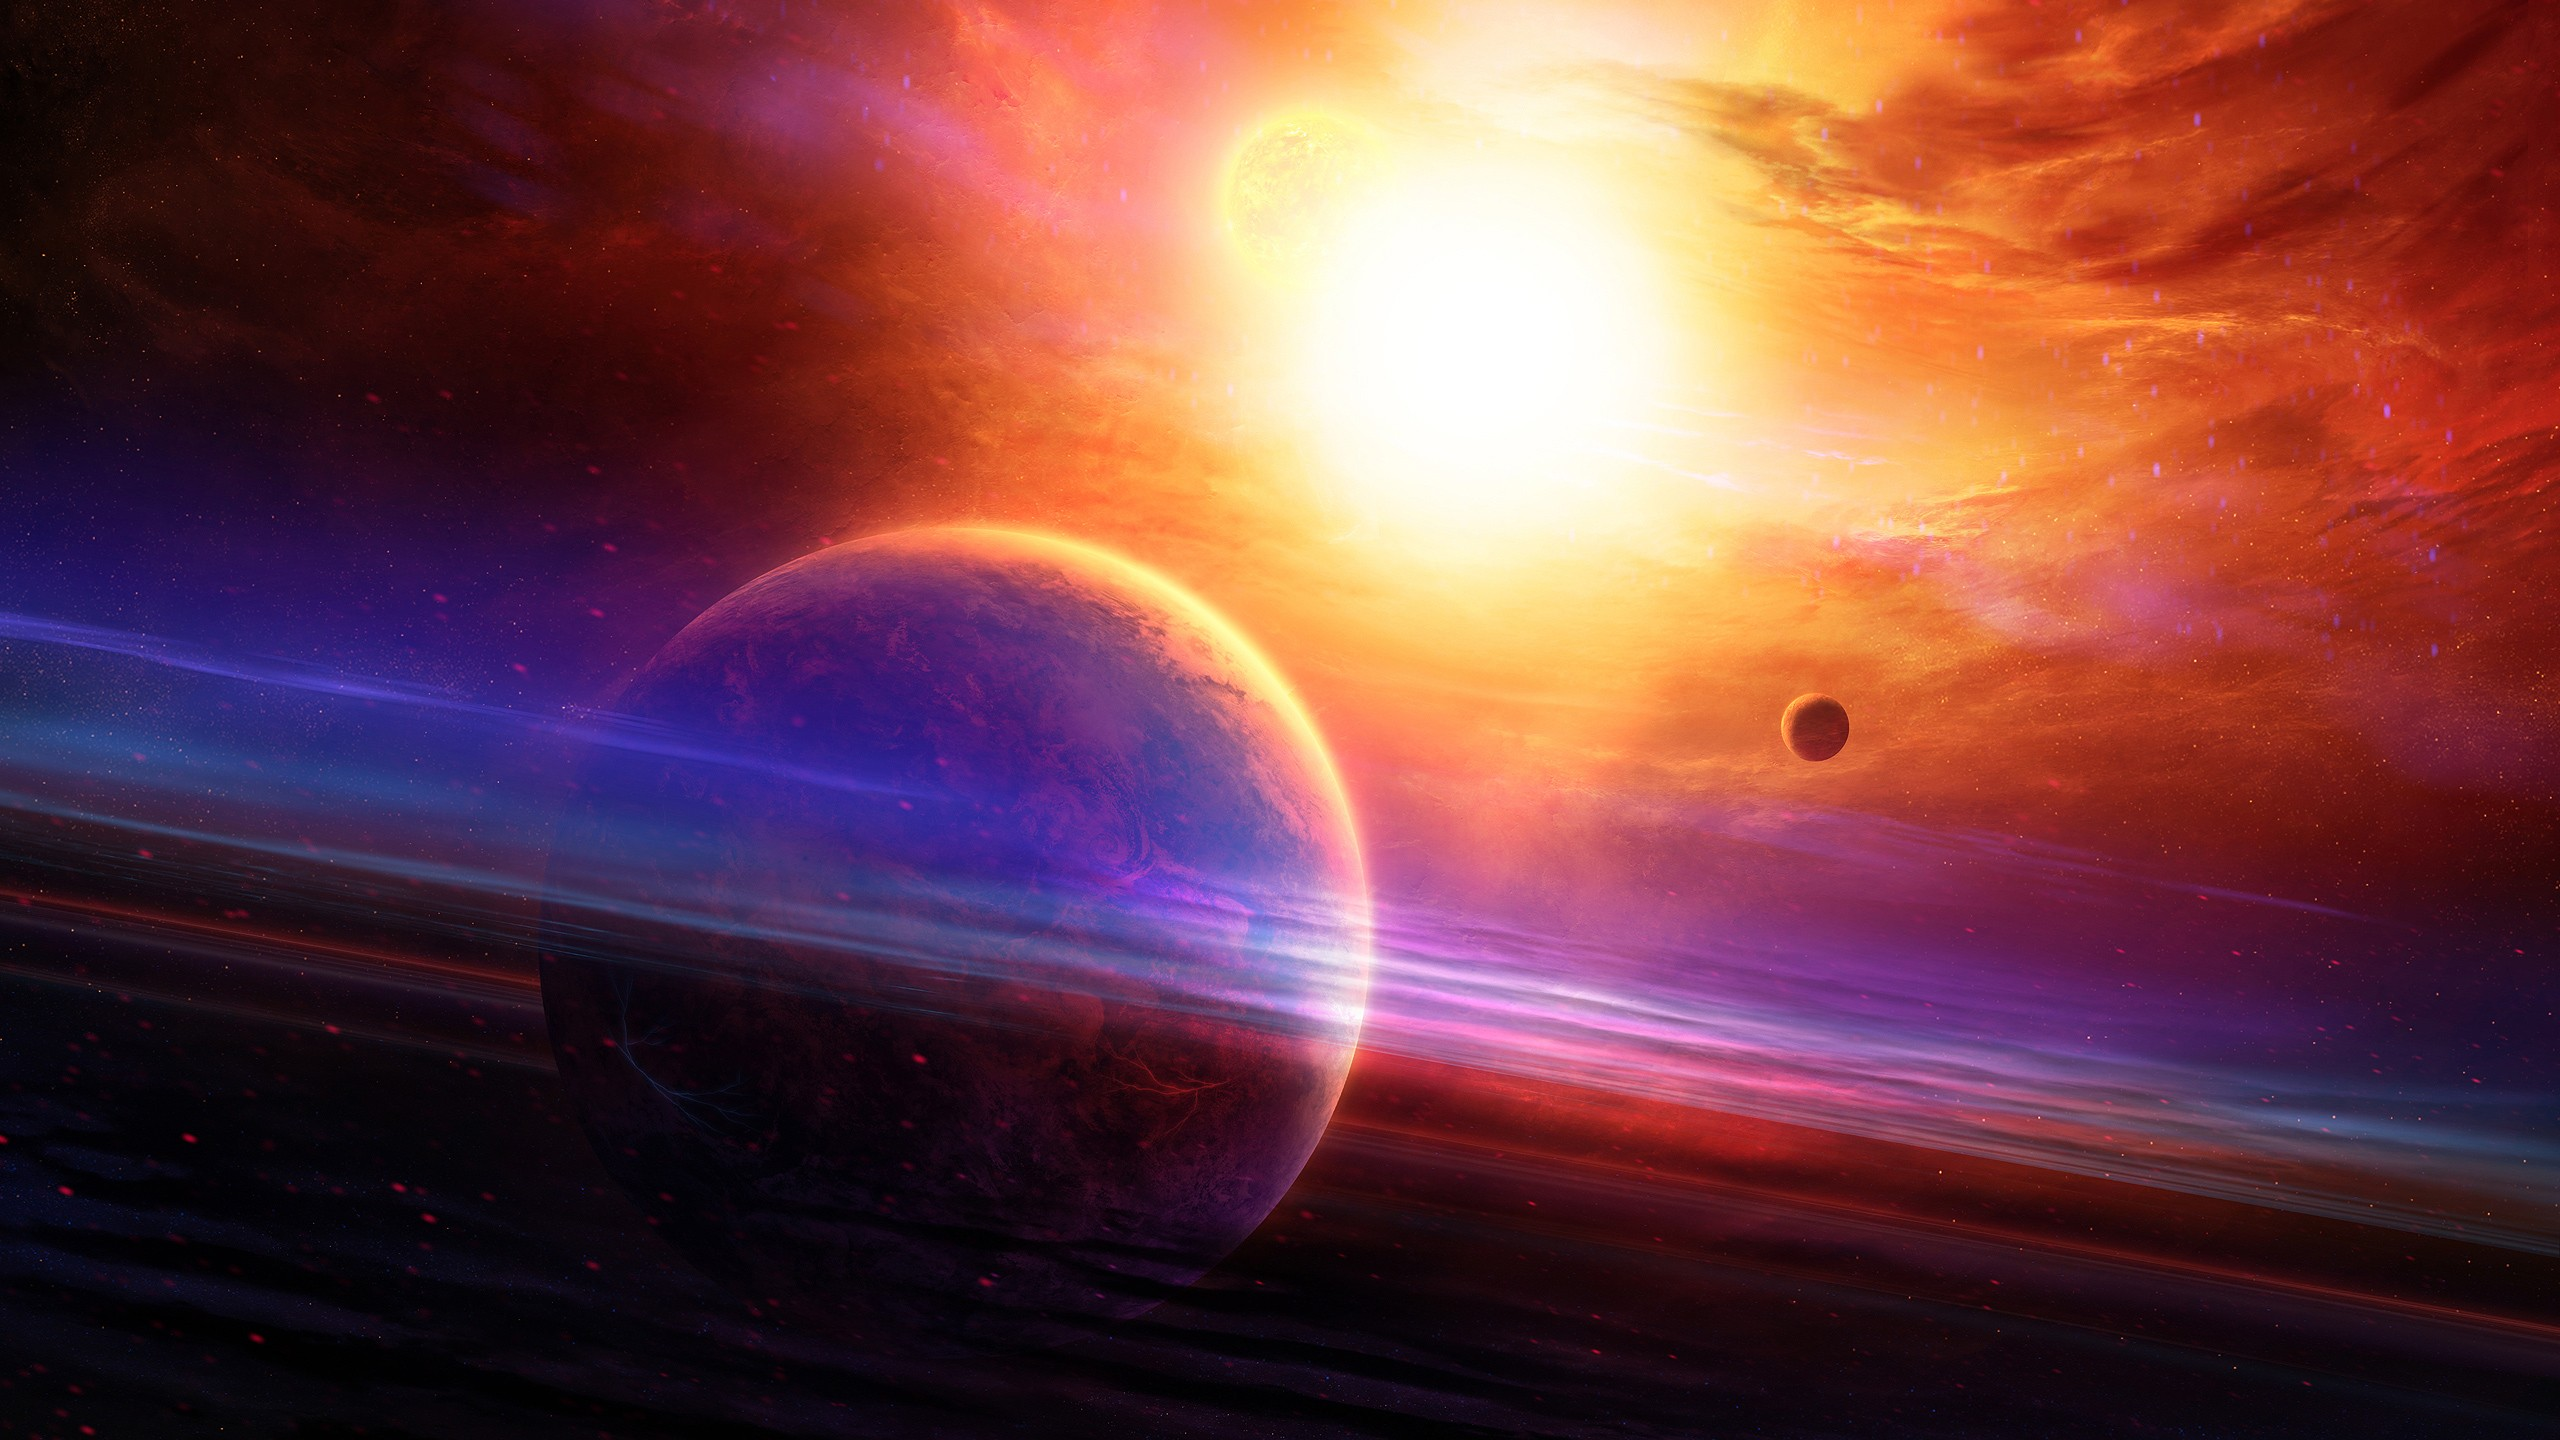 Solar System 3d Wallpaper Planets Spaceart Wallpapers Hd Wallpapers Id 21990